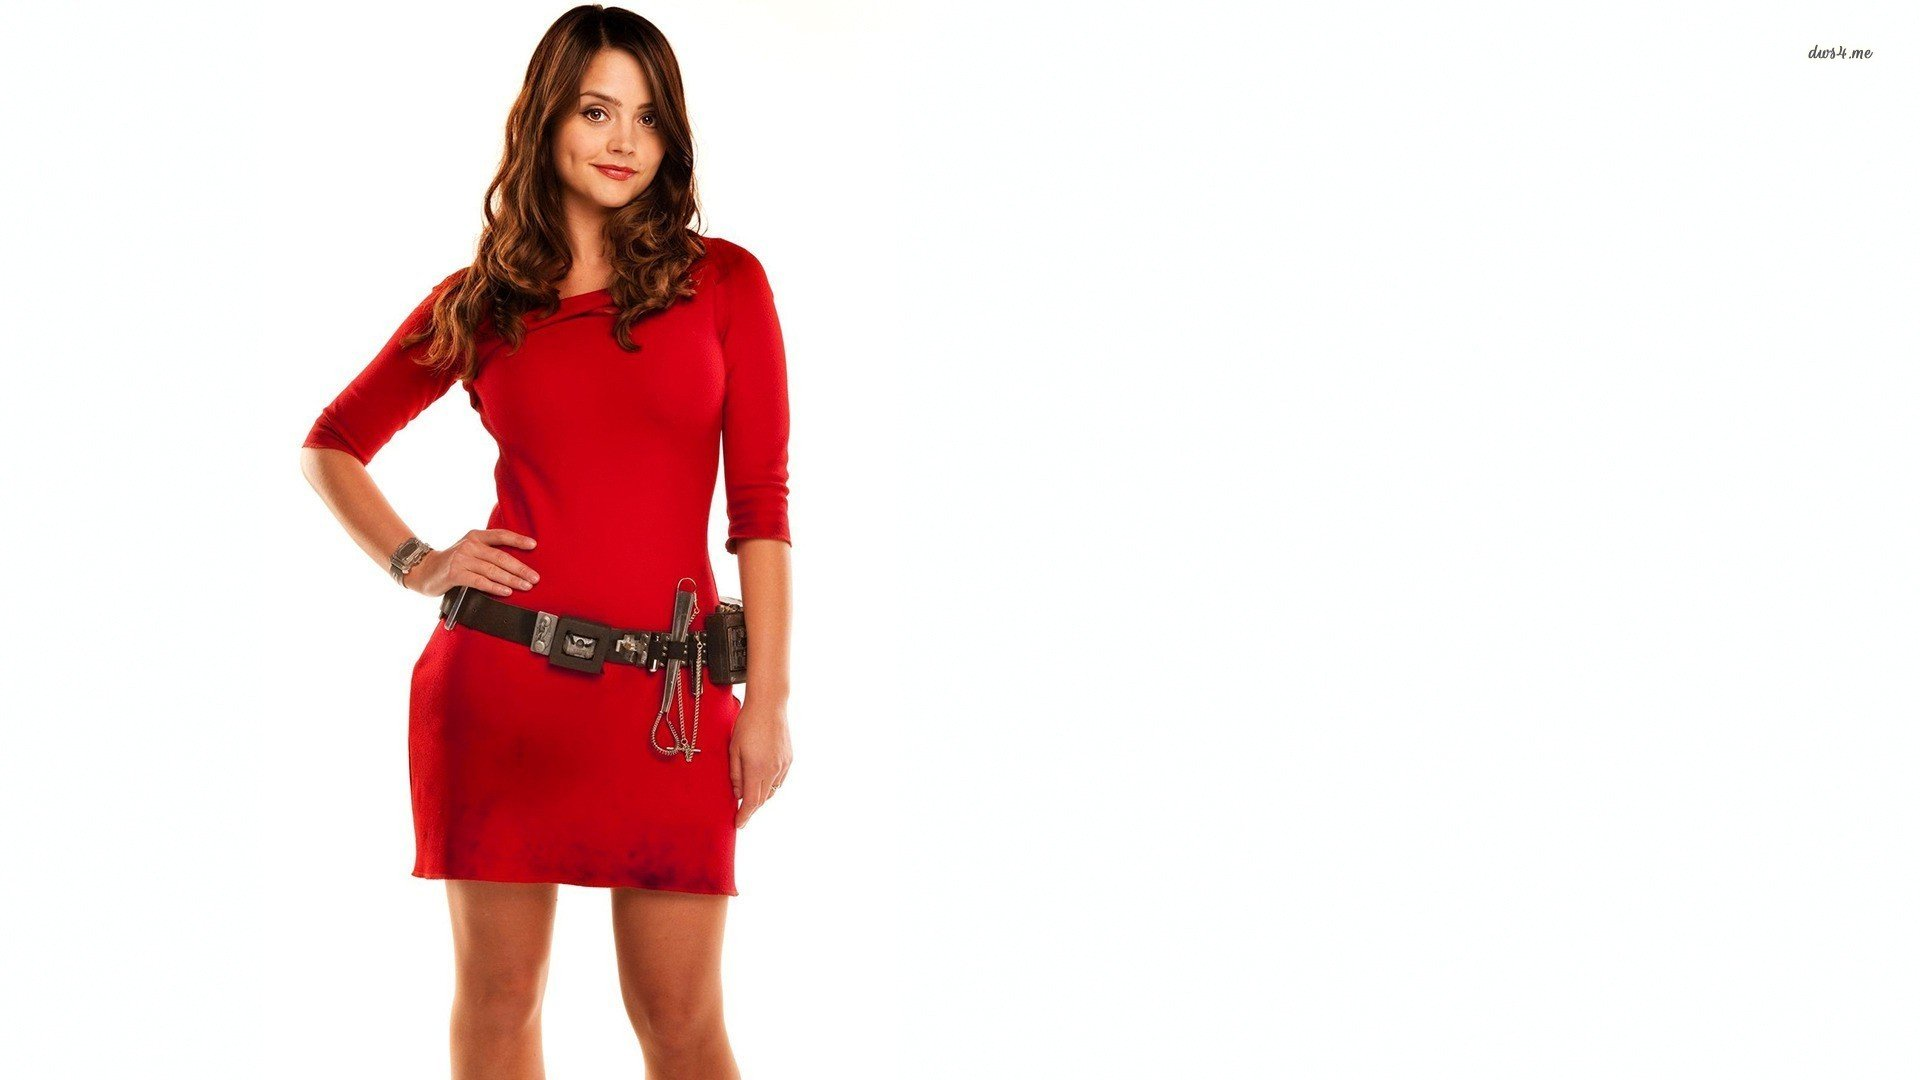 1920x1080 - Jenna-Louise Coleman Wallpapers 1